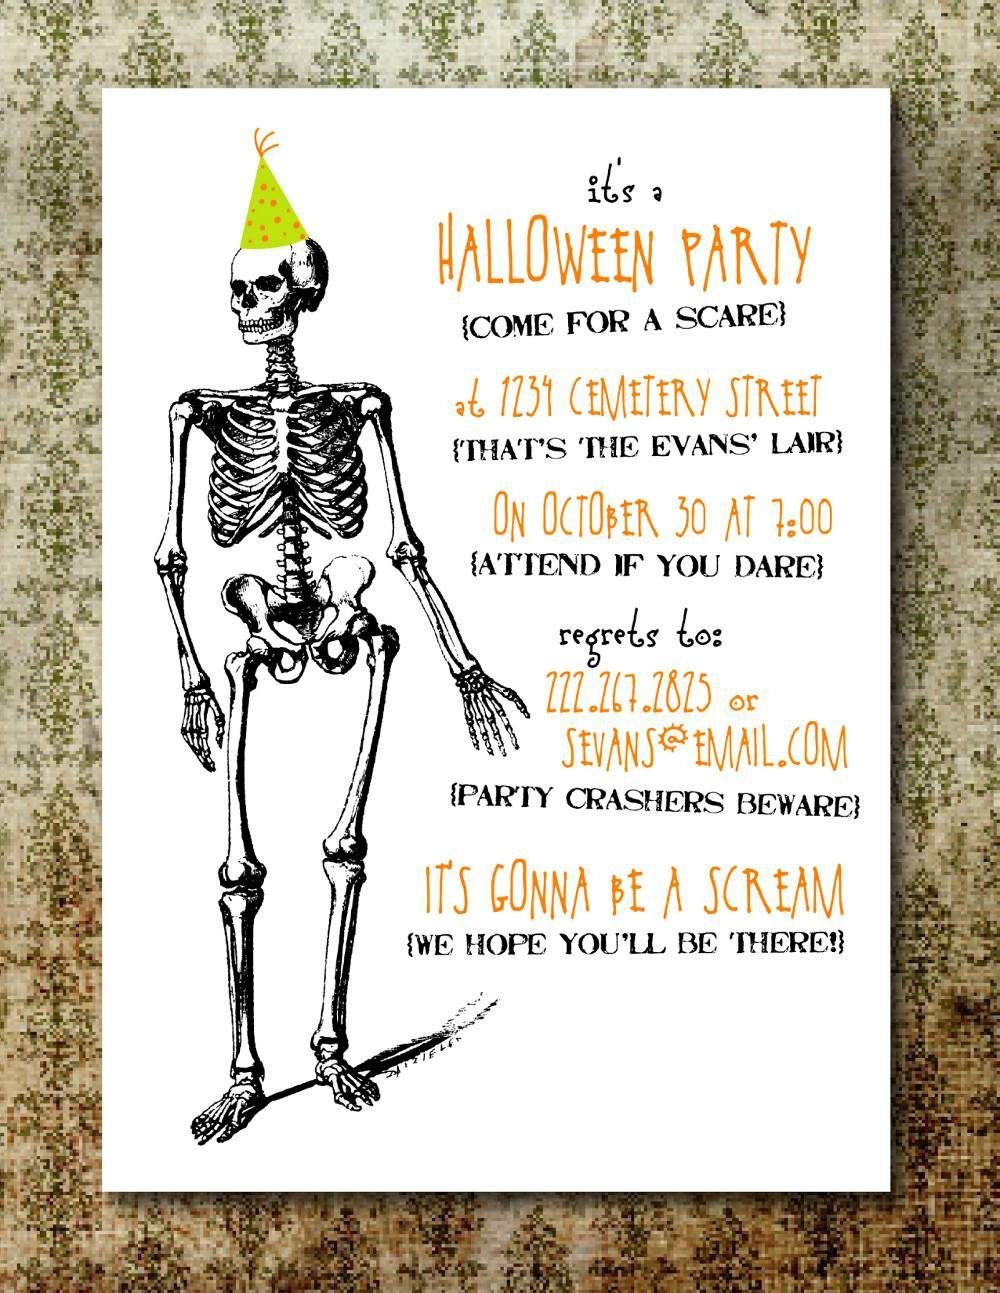 Free Printable Halloween Party Invitations For Adults | Party - Halloween Invitations Free Printable Black And White